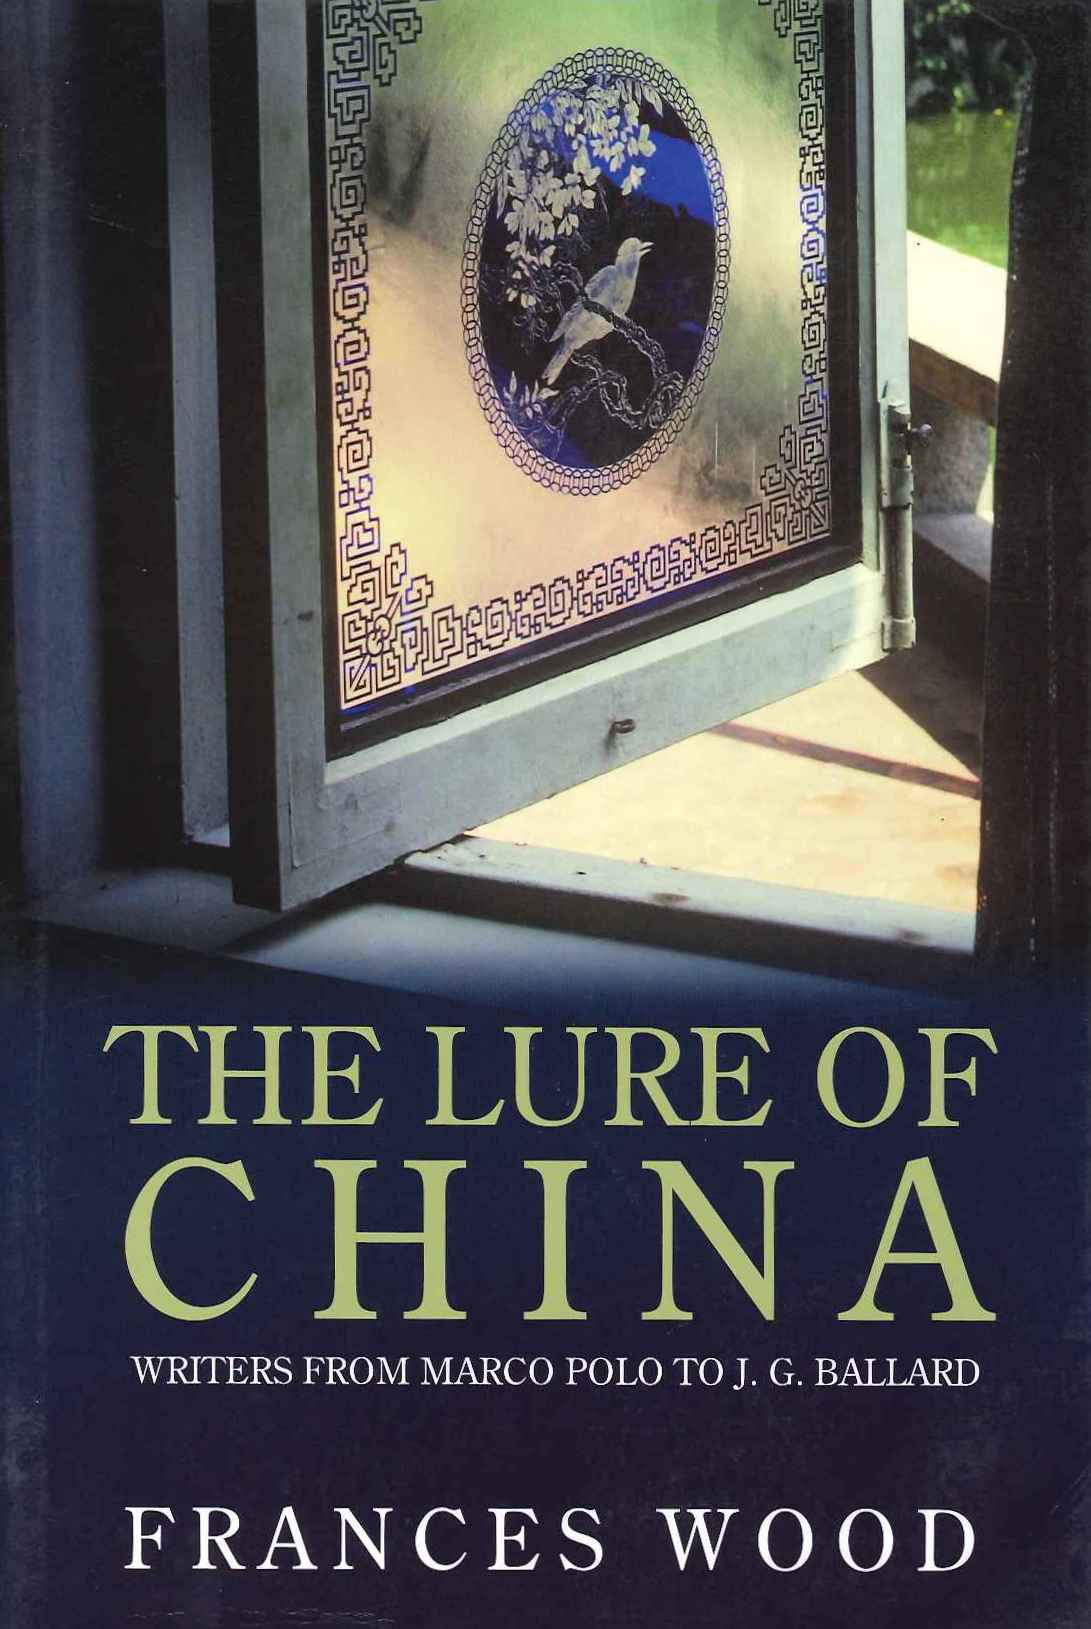 The Lure of China: History and Literature from Marco Polo to J.G.